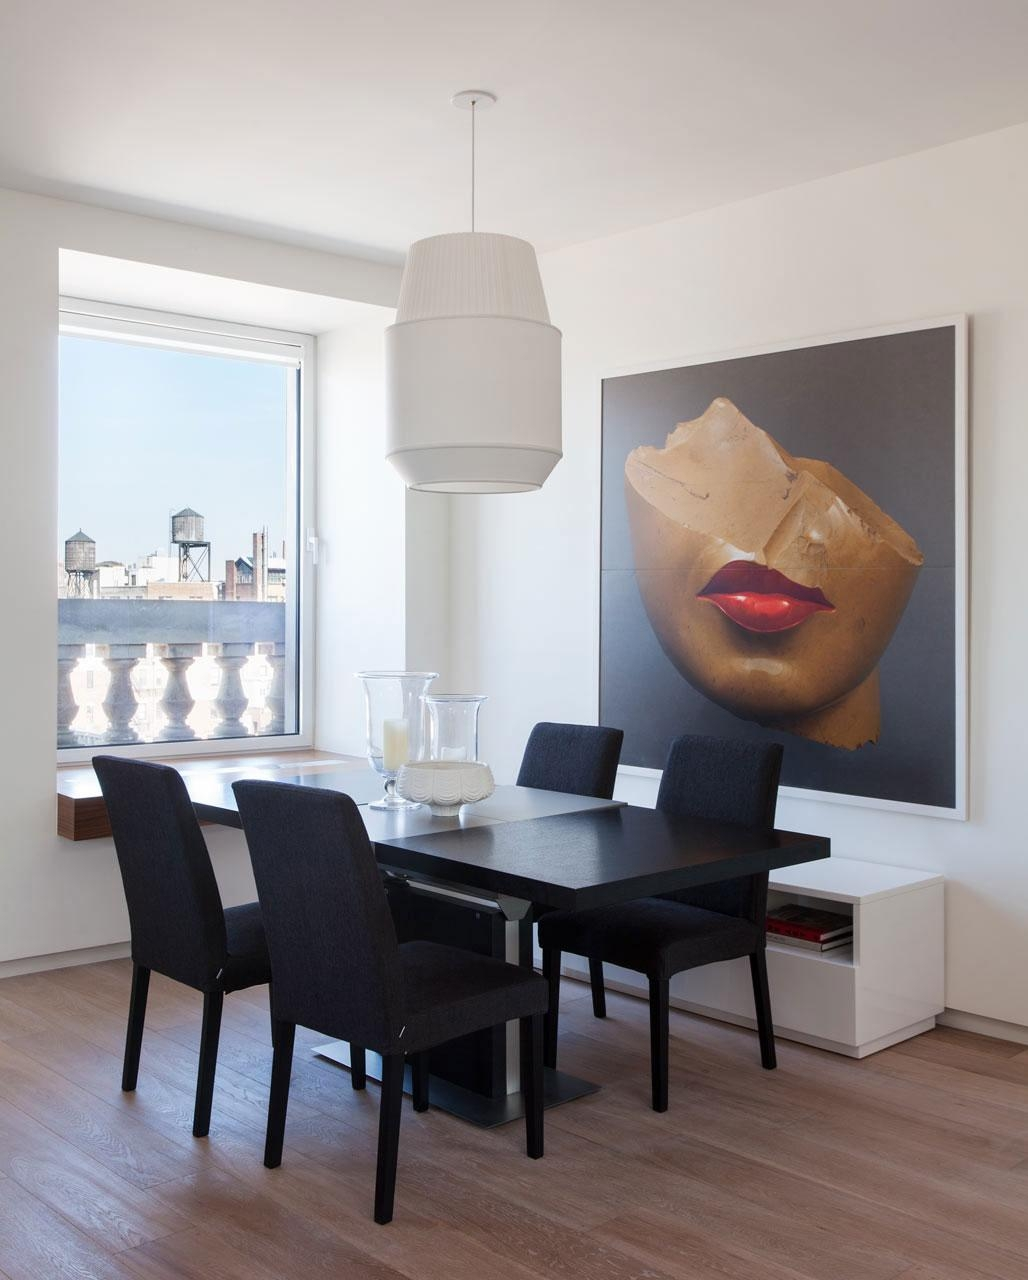 Framed Dining Room Wall Art : Dining Room Wall Art Ideas Throughout Dining Wall Art (View 10 of 20)